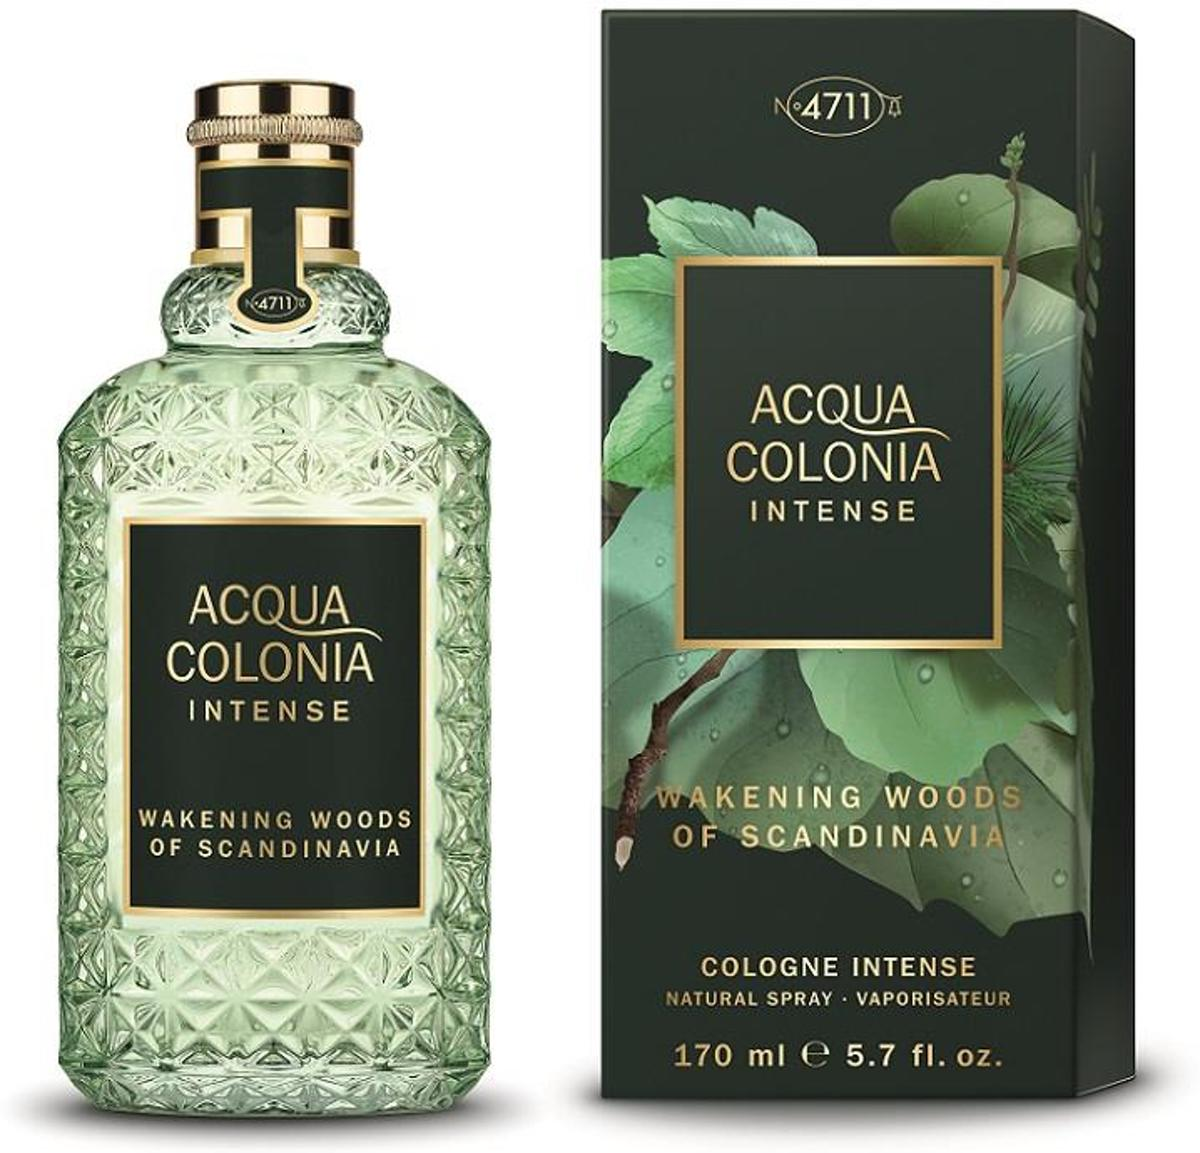 Acqua Colonia Intense - Wakening woods of Scandinavia - 170 ml